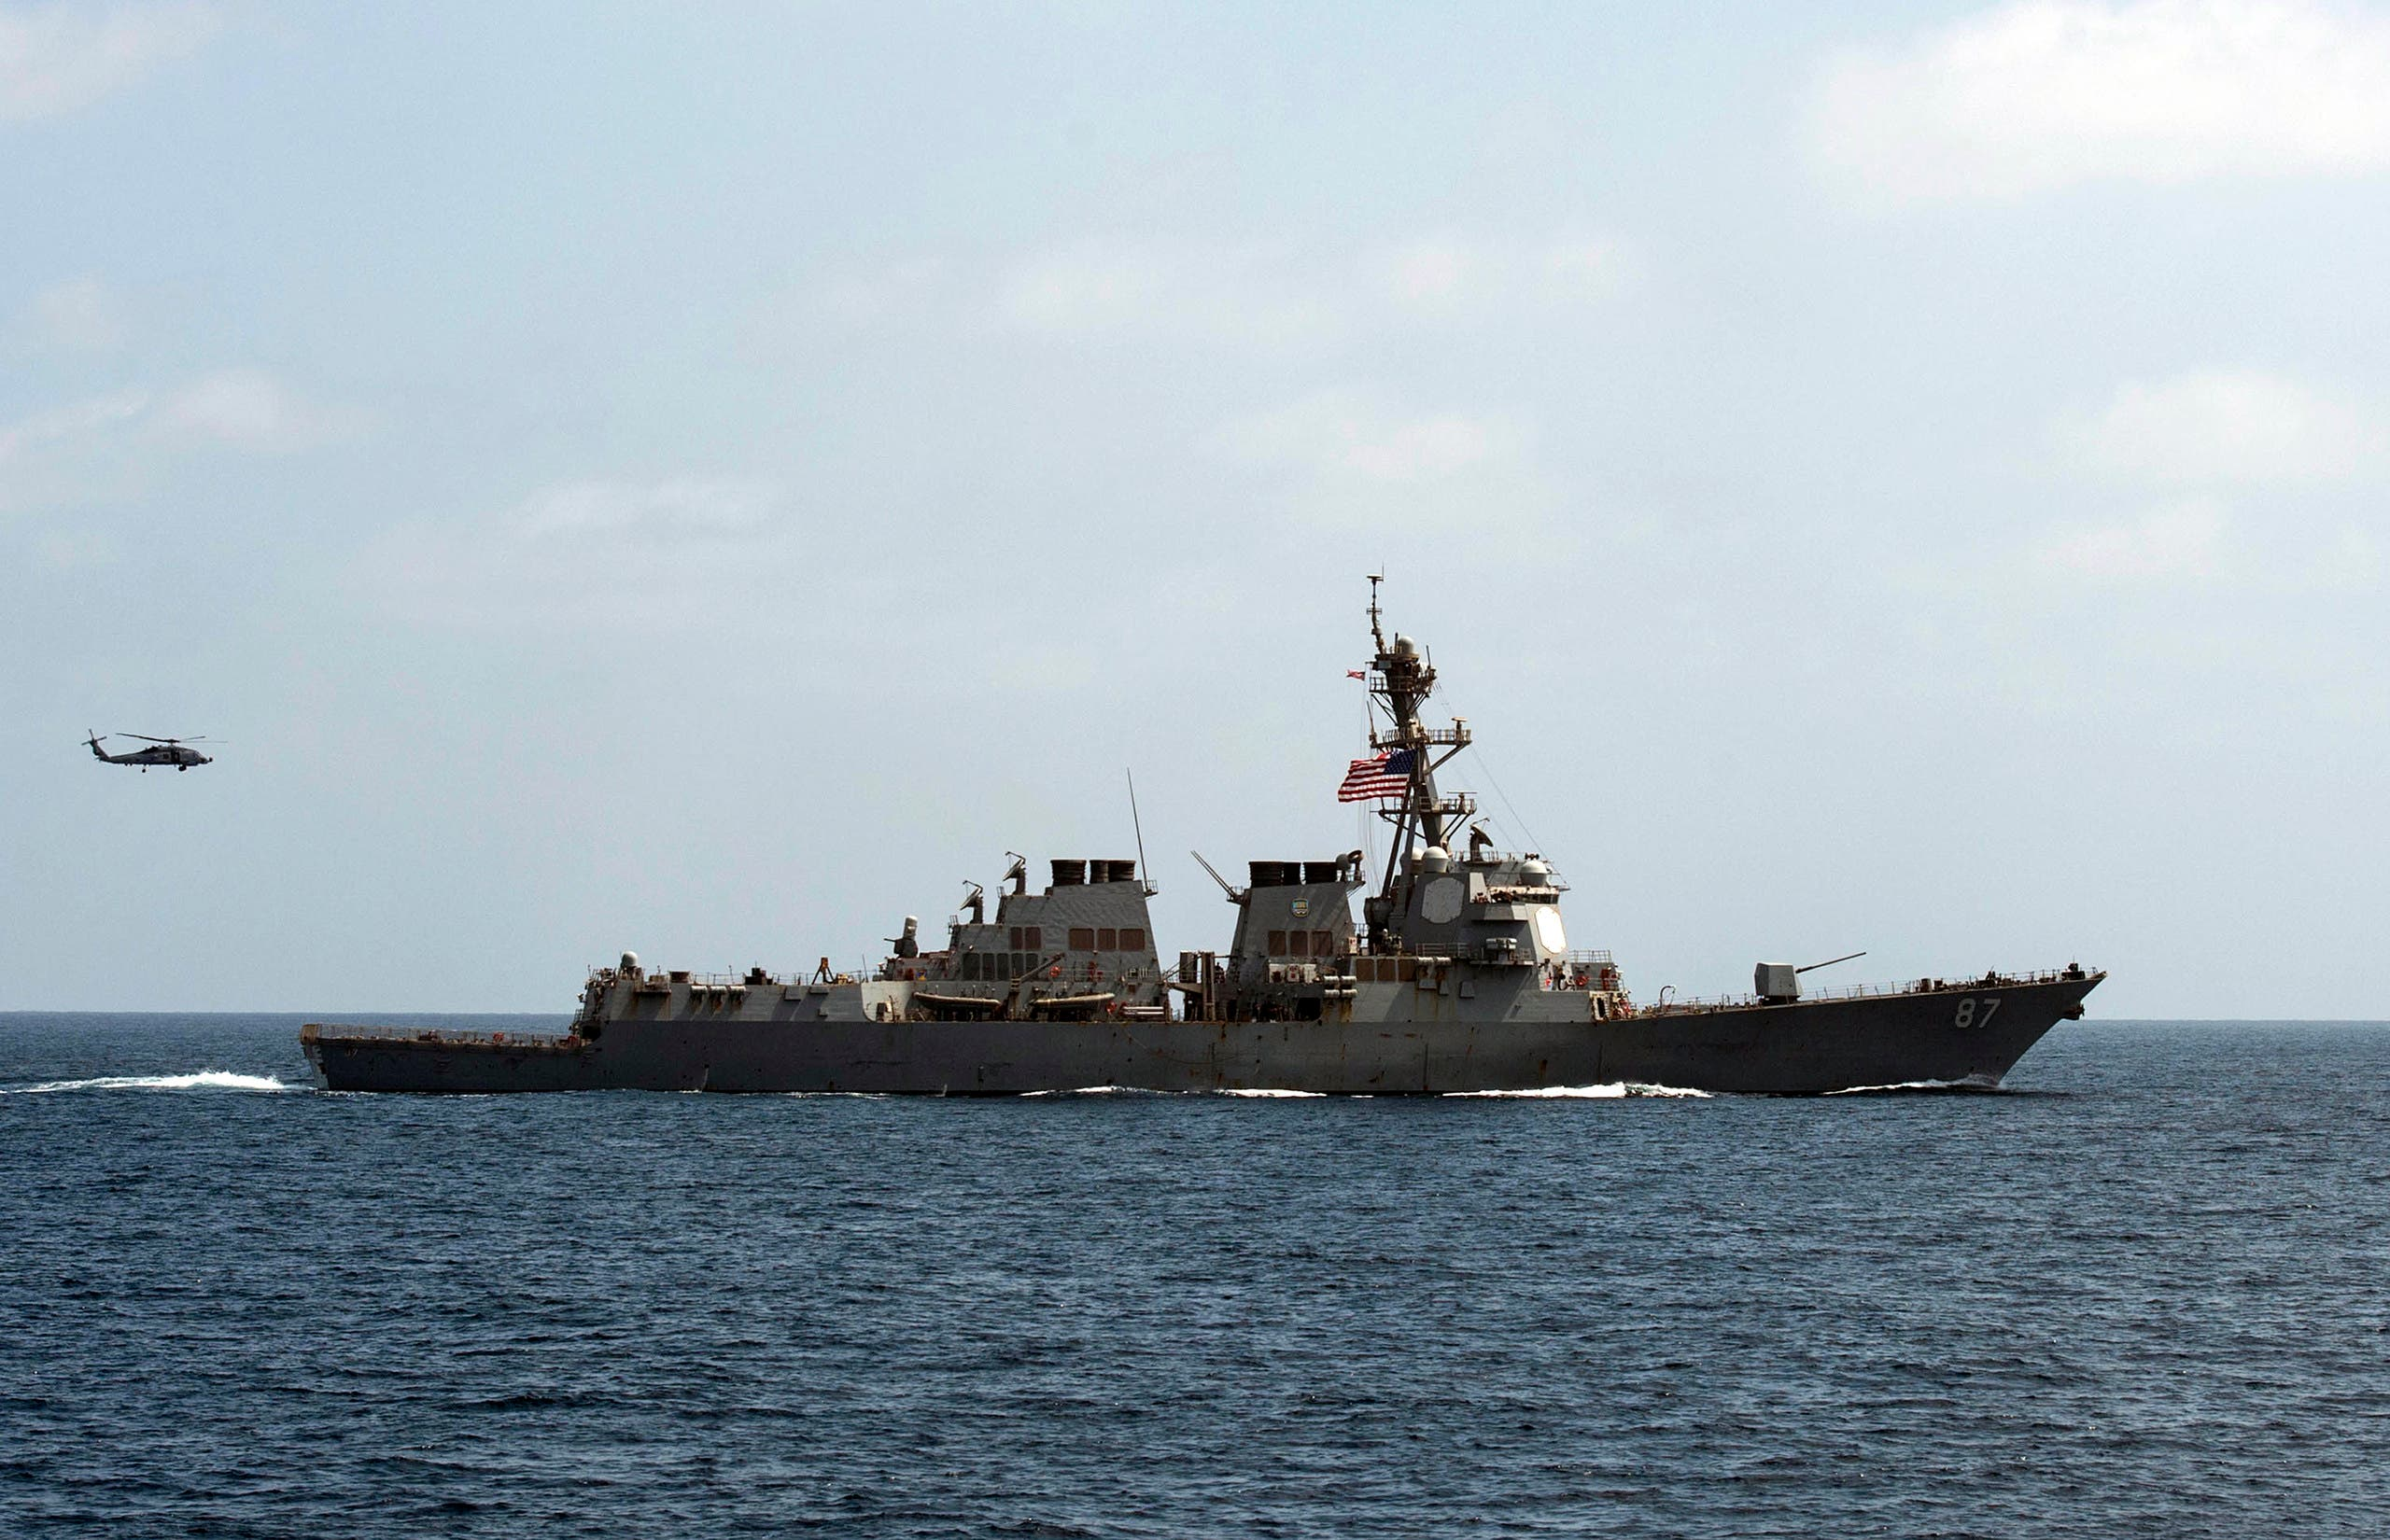 In this image released by the U.S. Navy, the USS Mason (DDG 87), conducts maneuvers as part of a exercise in the Gulf of Oman on Sept. 10, 2016. For the second time this week two missiles were fired at the USS Mason in the Red Sea, and officials believe they were launched by the same Yemen-based Houthi rebels involved in the earlier attack, a U.S. military official said Wednesday. AP_